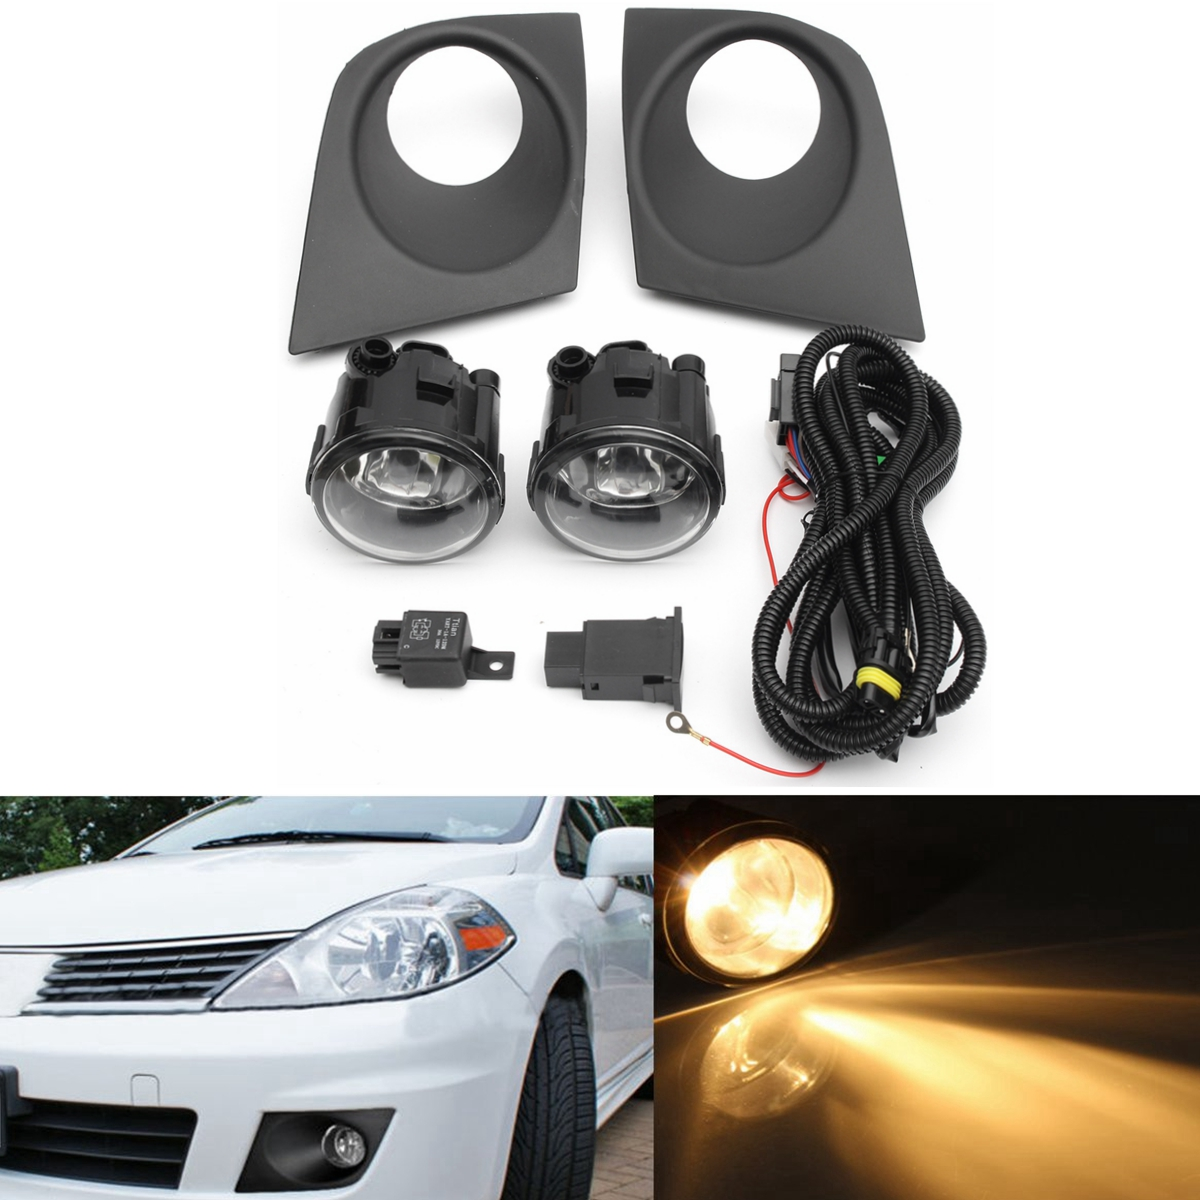 1 Pair Car Front Bumper Grille H11 Fog Light Bulb With Switch Wire For Nissan Versa 2007 / 2008 / 2009 / 2010 / 2011 Fog Lamps